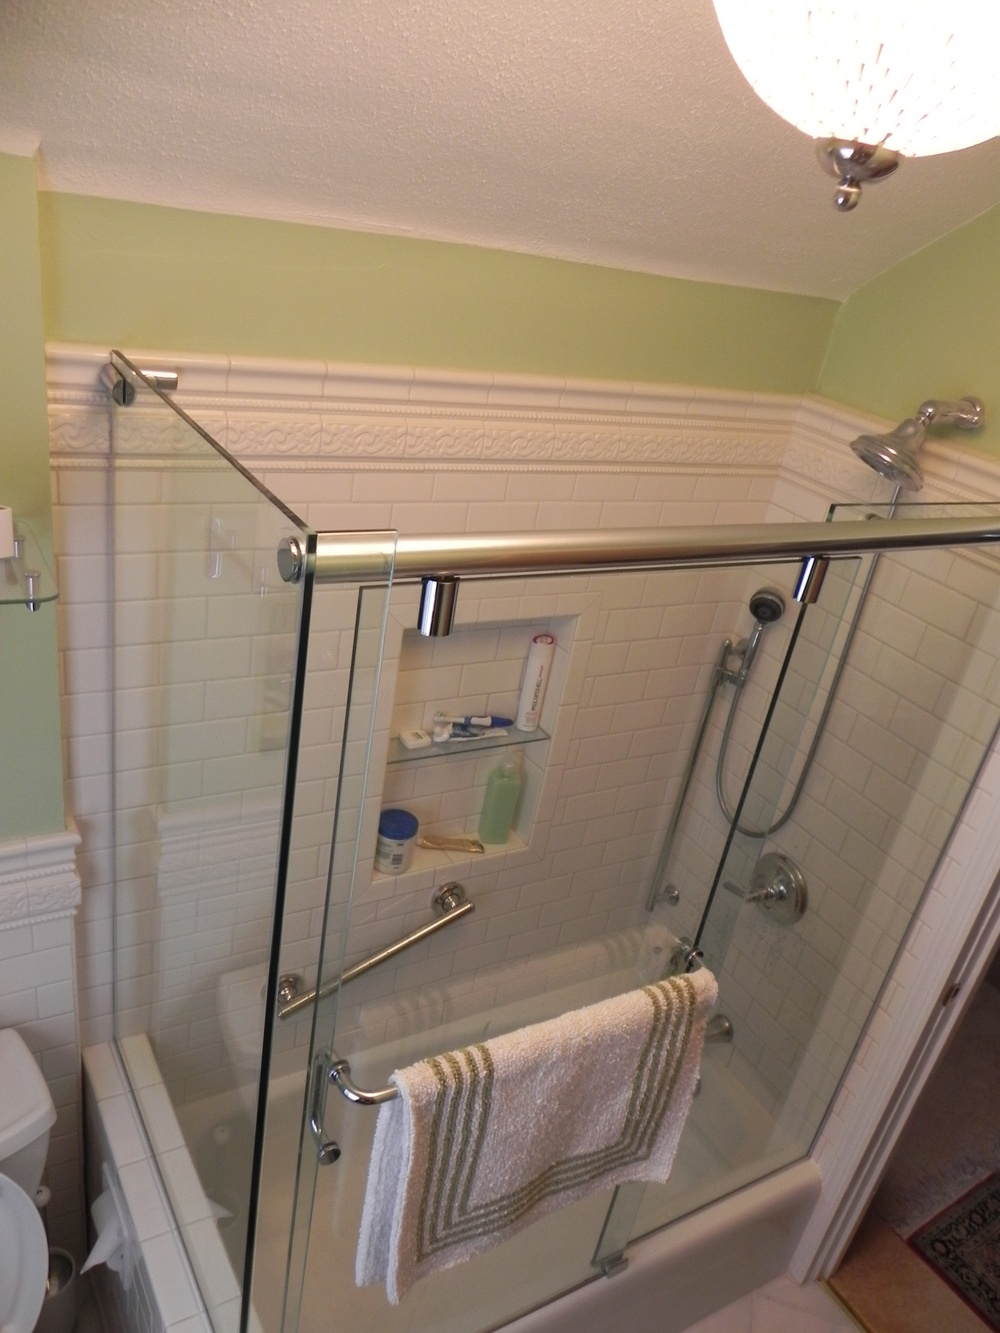 Sliding Corner Glass Shower Doors On Tub